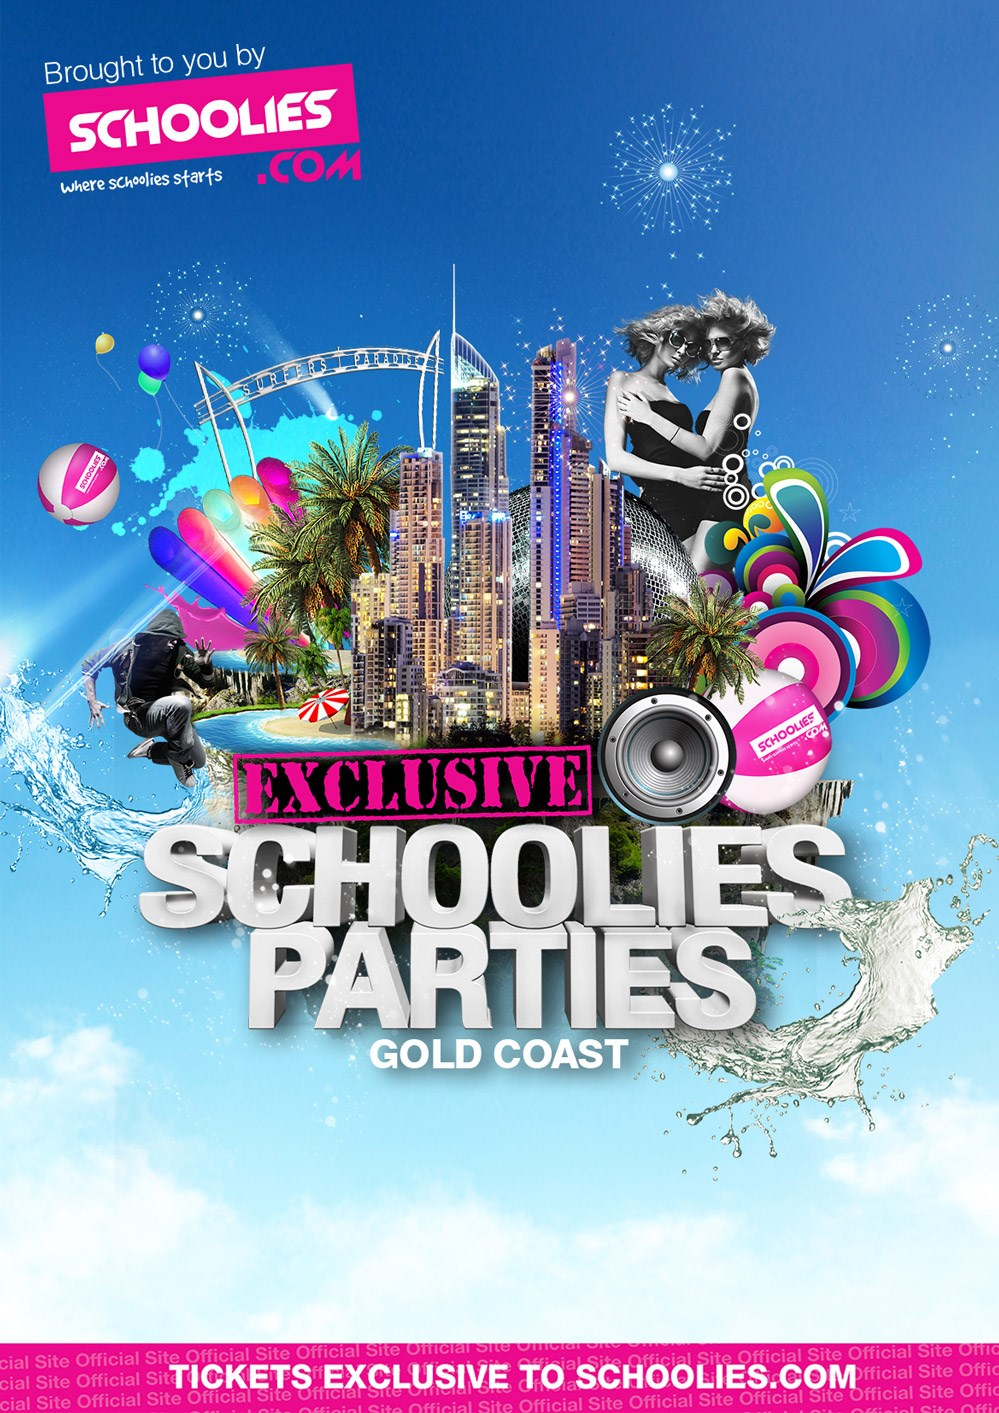 Gold Coast Schoolies Parties